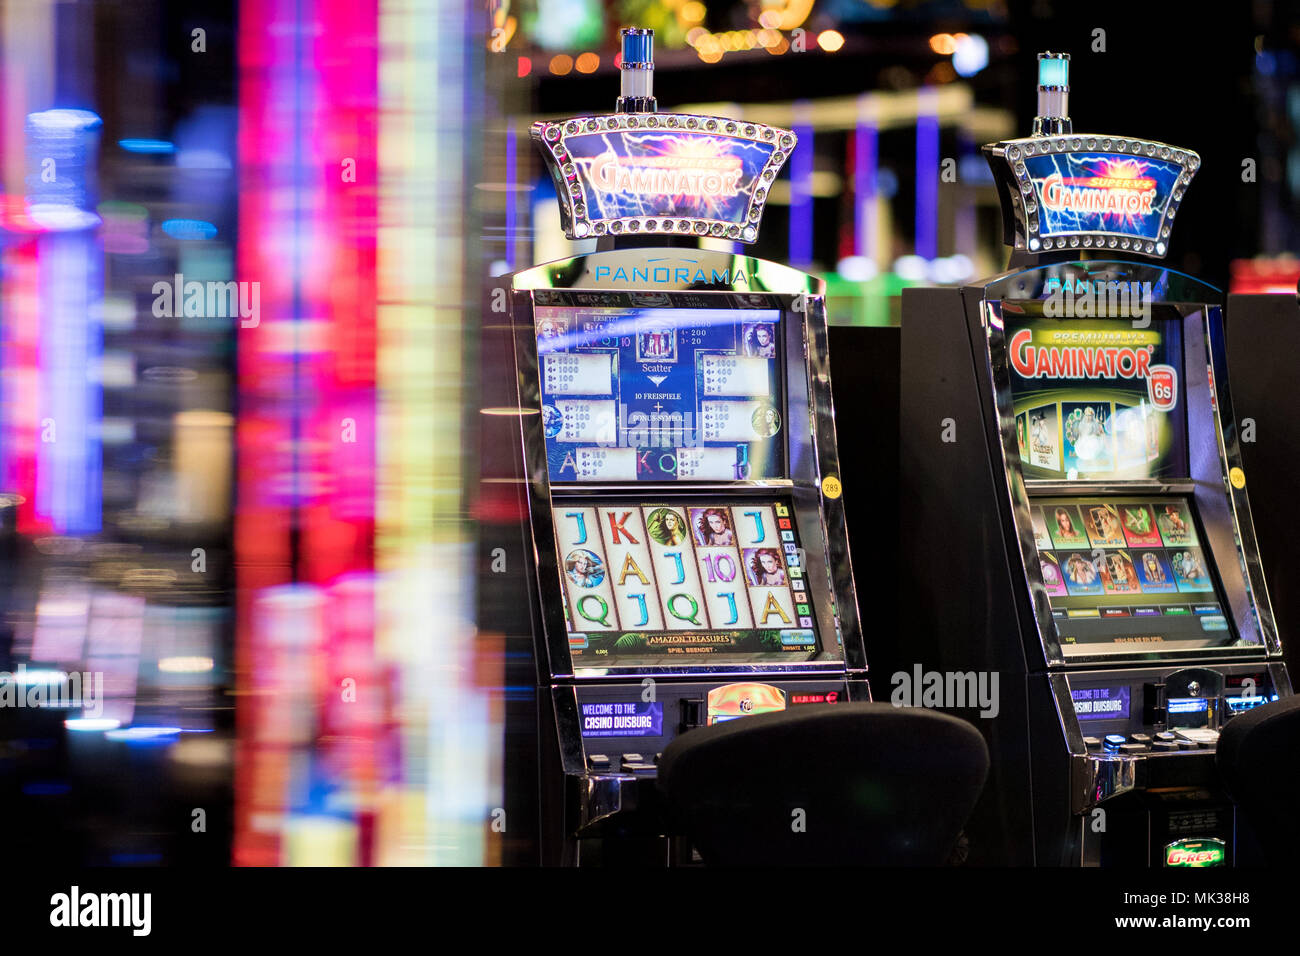 04 May 2018 Germany Duisburg Slot Machines Stand Inside The Westspiel Casino The State Of North Rhine Westphalia Plans To Sell The Casino Group Westspiel Photo Marcel Kusch Dpa Stock Photo Alamy